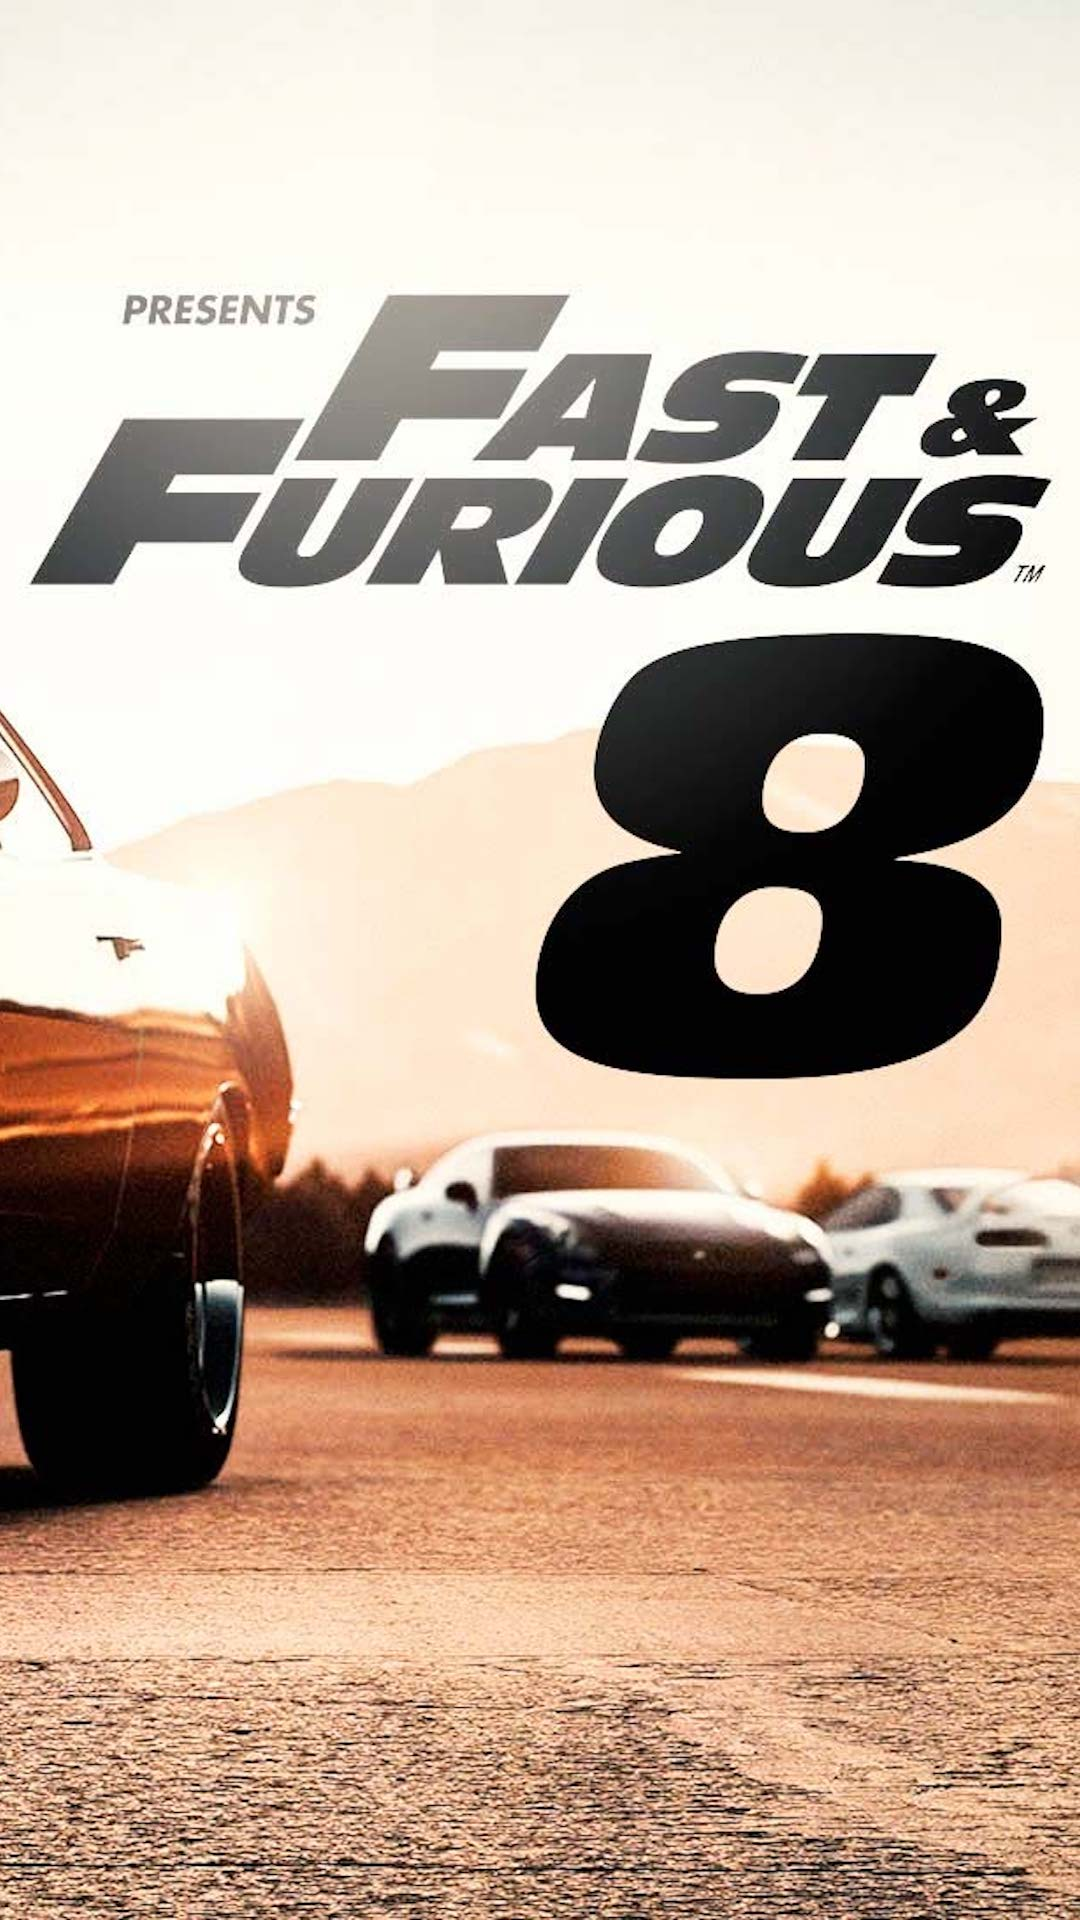 download fast furious 8 full